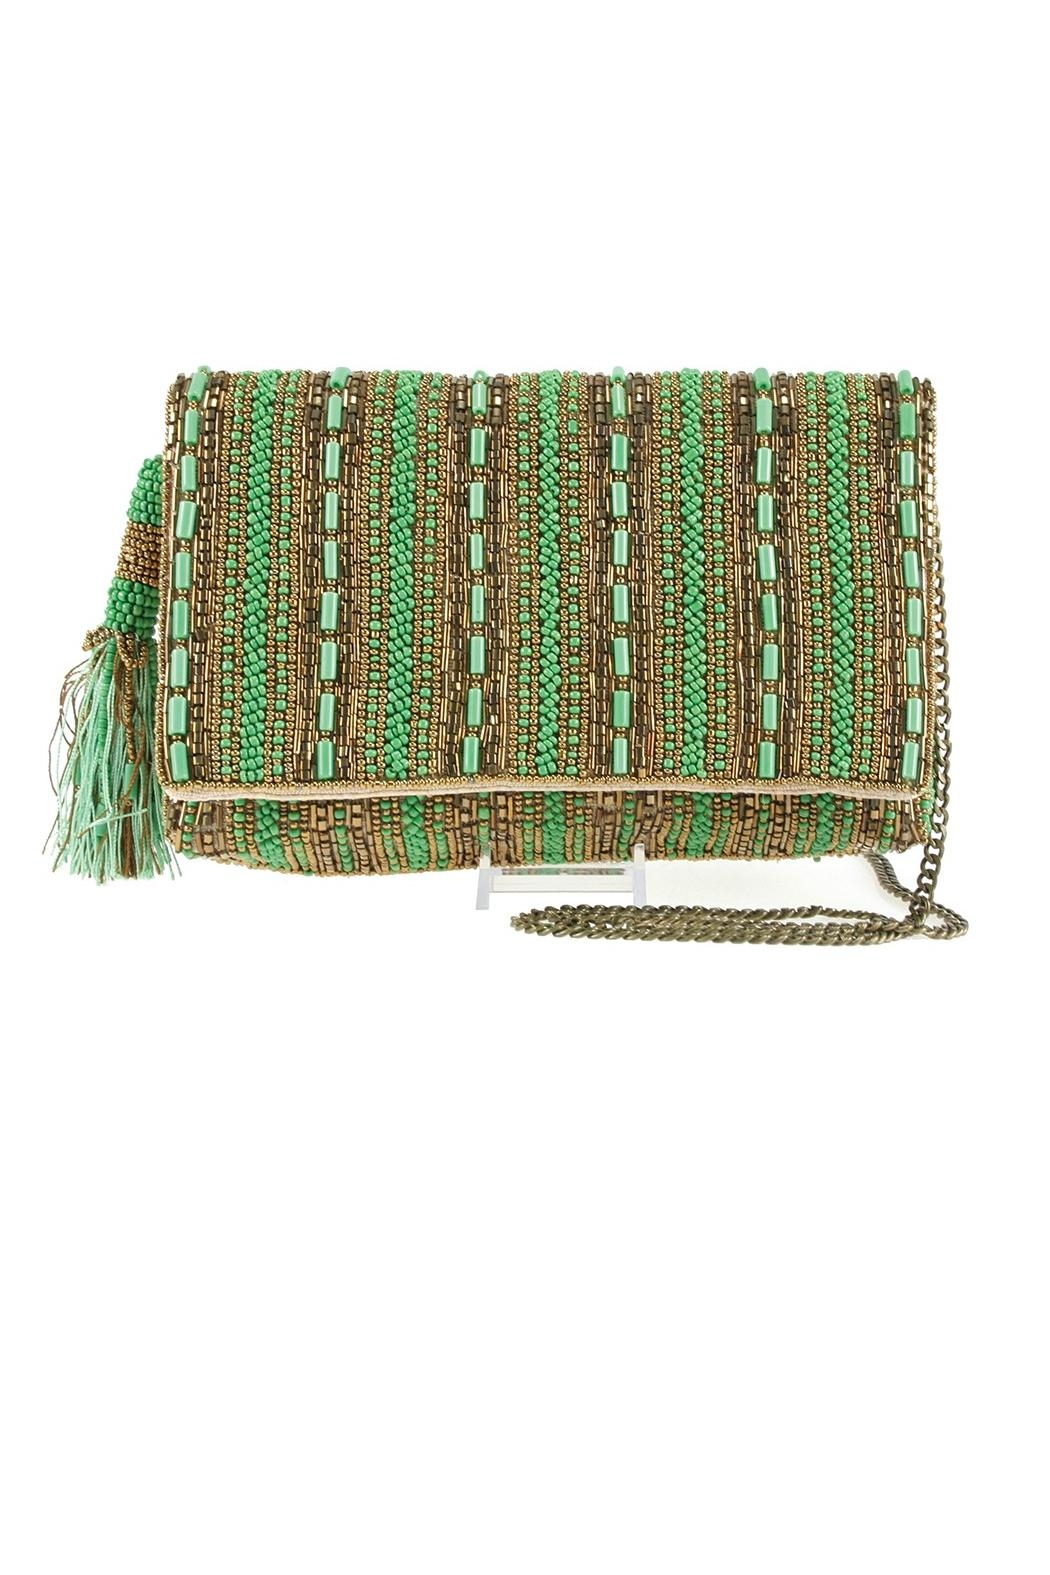 Mary Frances 'Stripe-It-Green  Clutch - Main Image